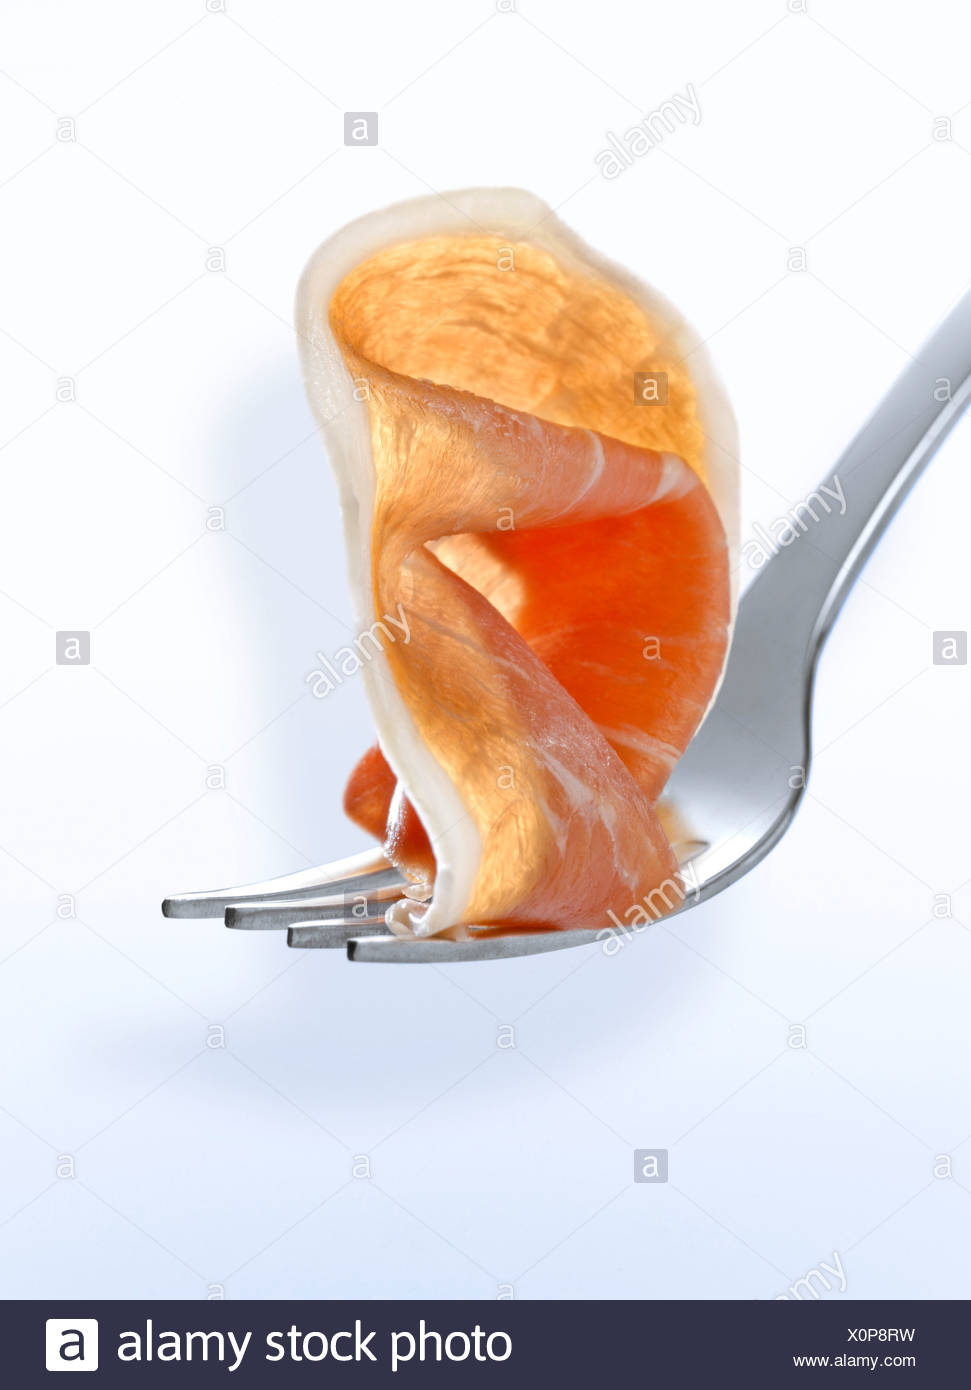 Slice of raw ham on a fork - Stock Image